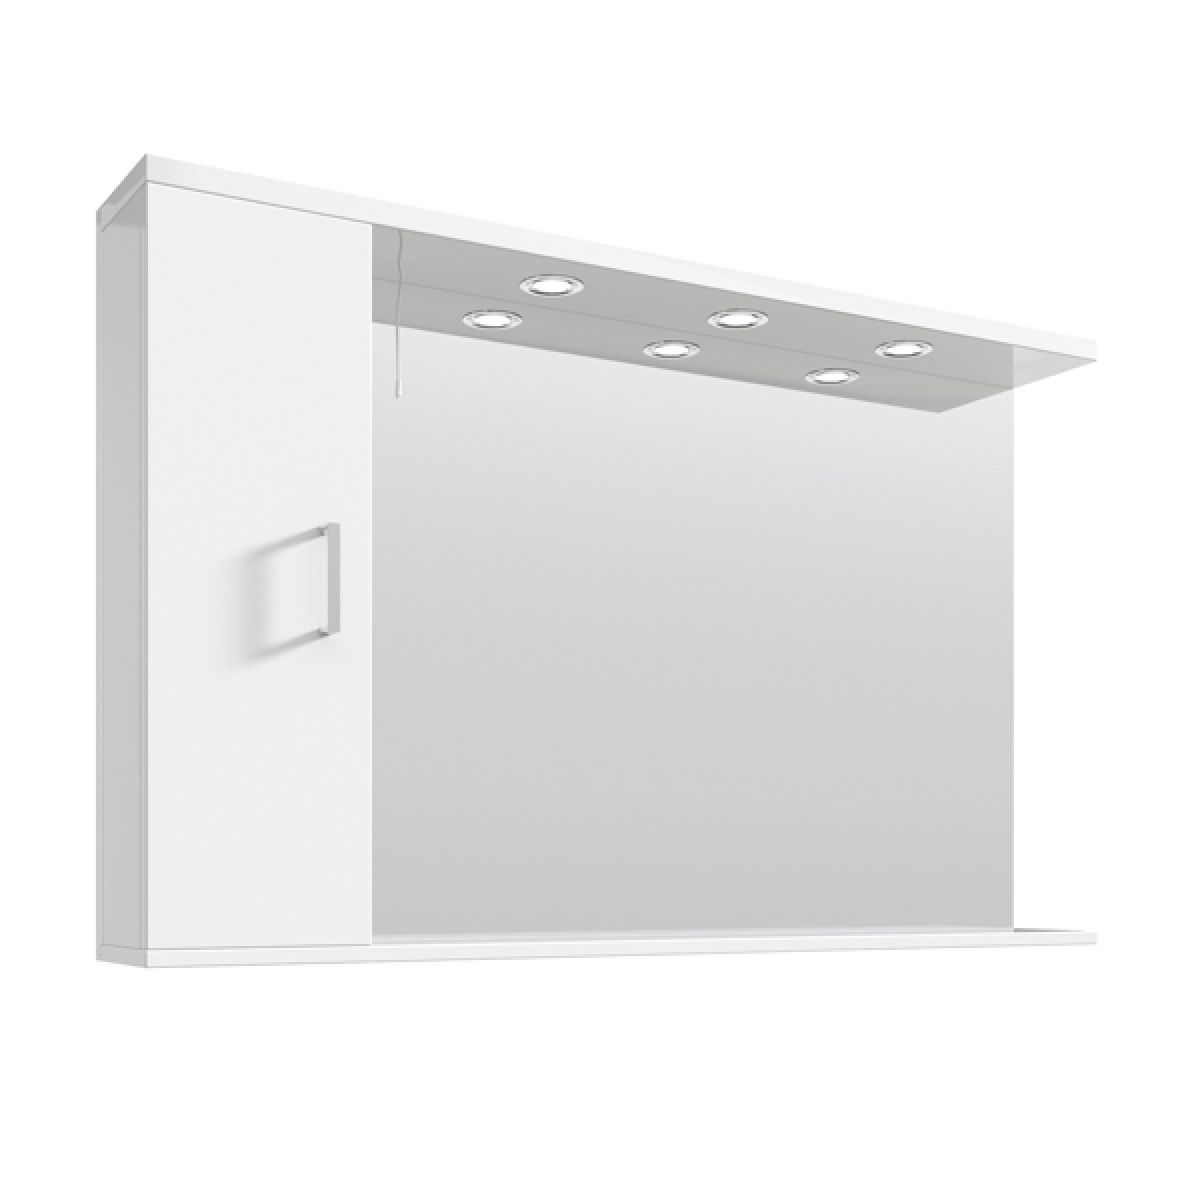 Nuie High Gloss White Bathroom Mirror Cabinet With Lights 1200mm